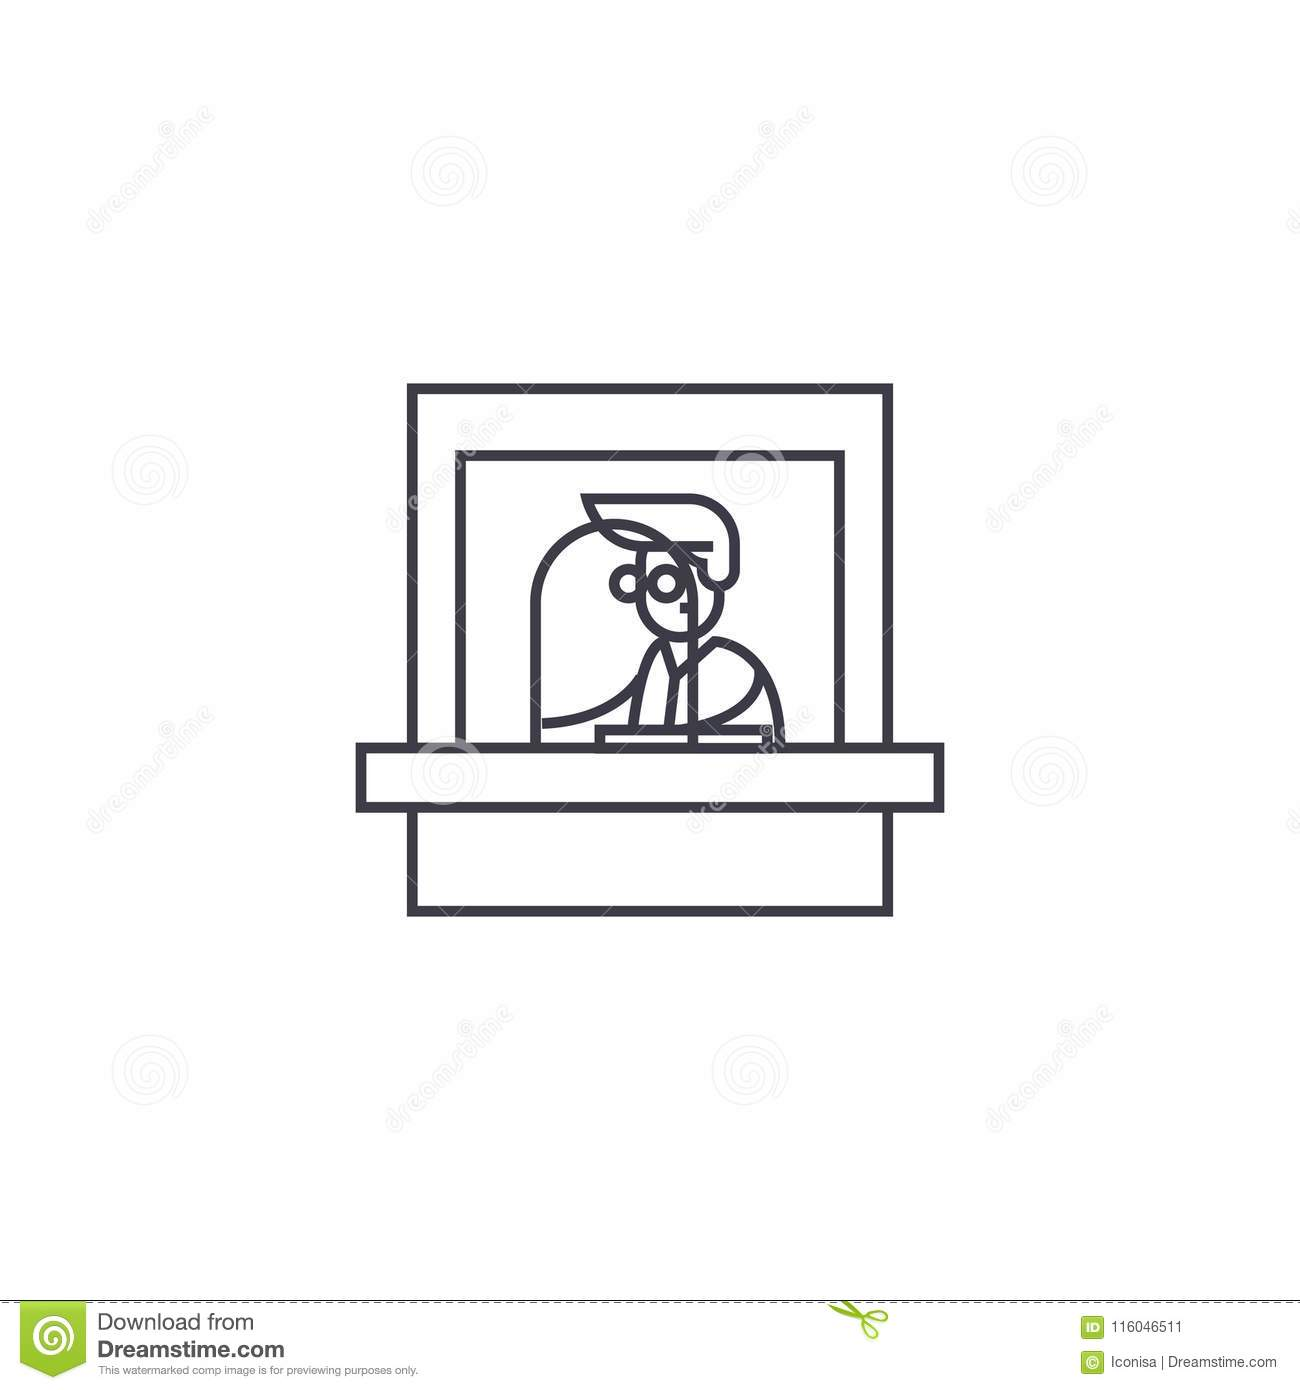 ticket office vector line icon sign illustration on background